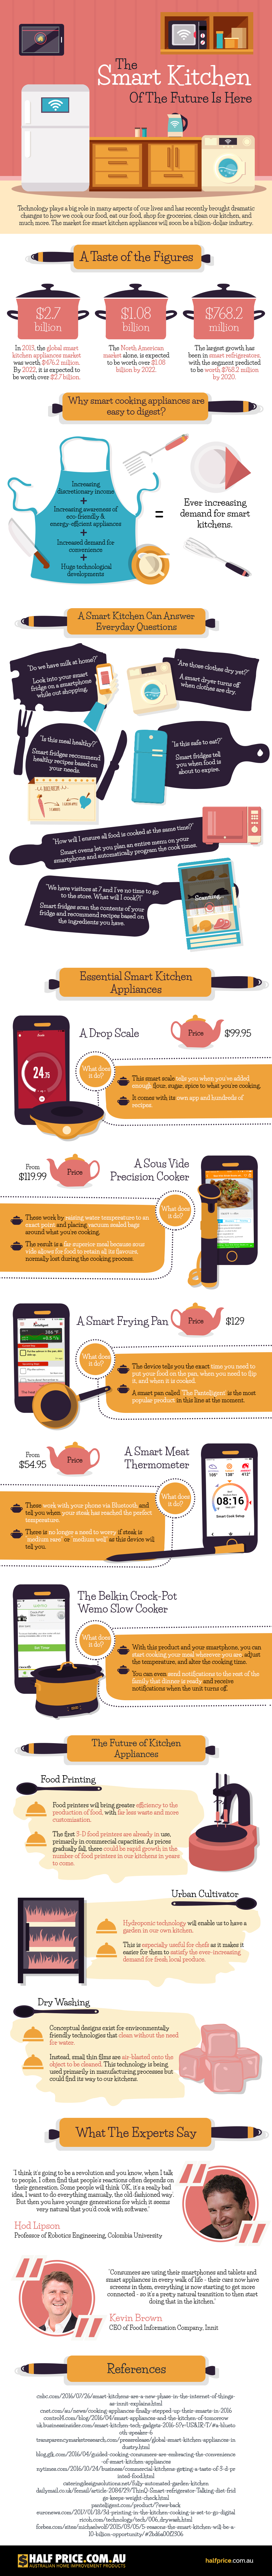 Smart Kitchen of the Future is Here Infographic